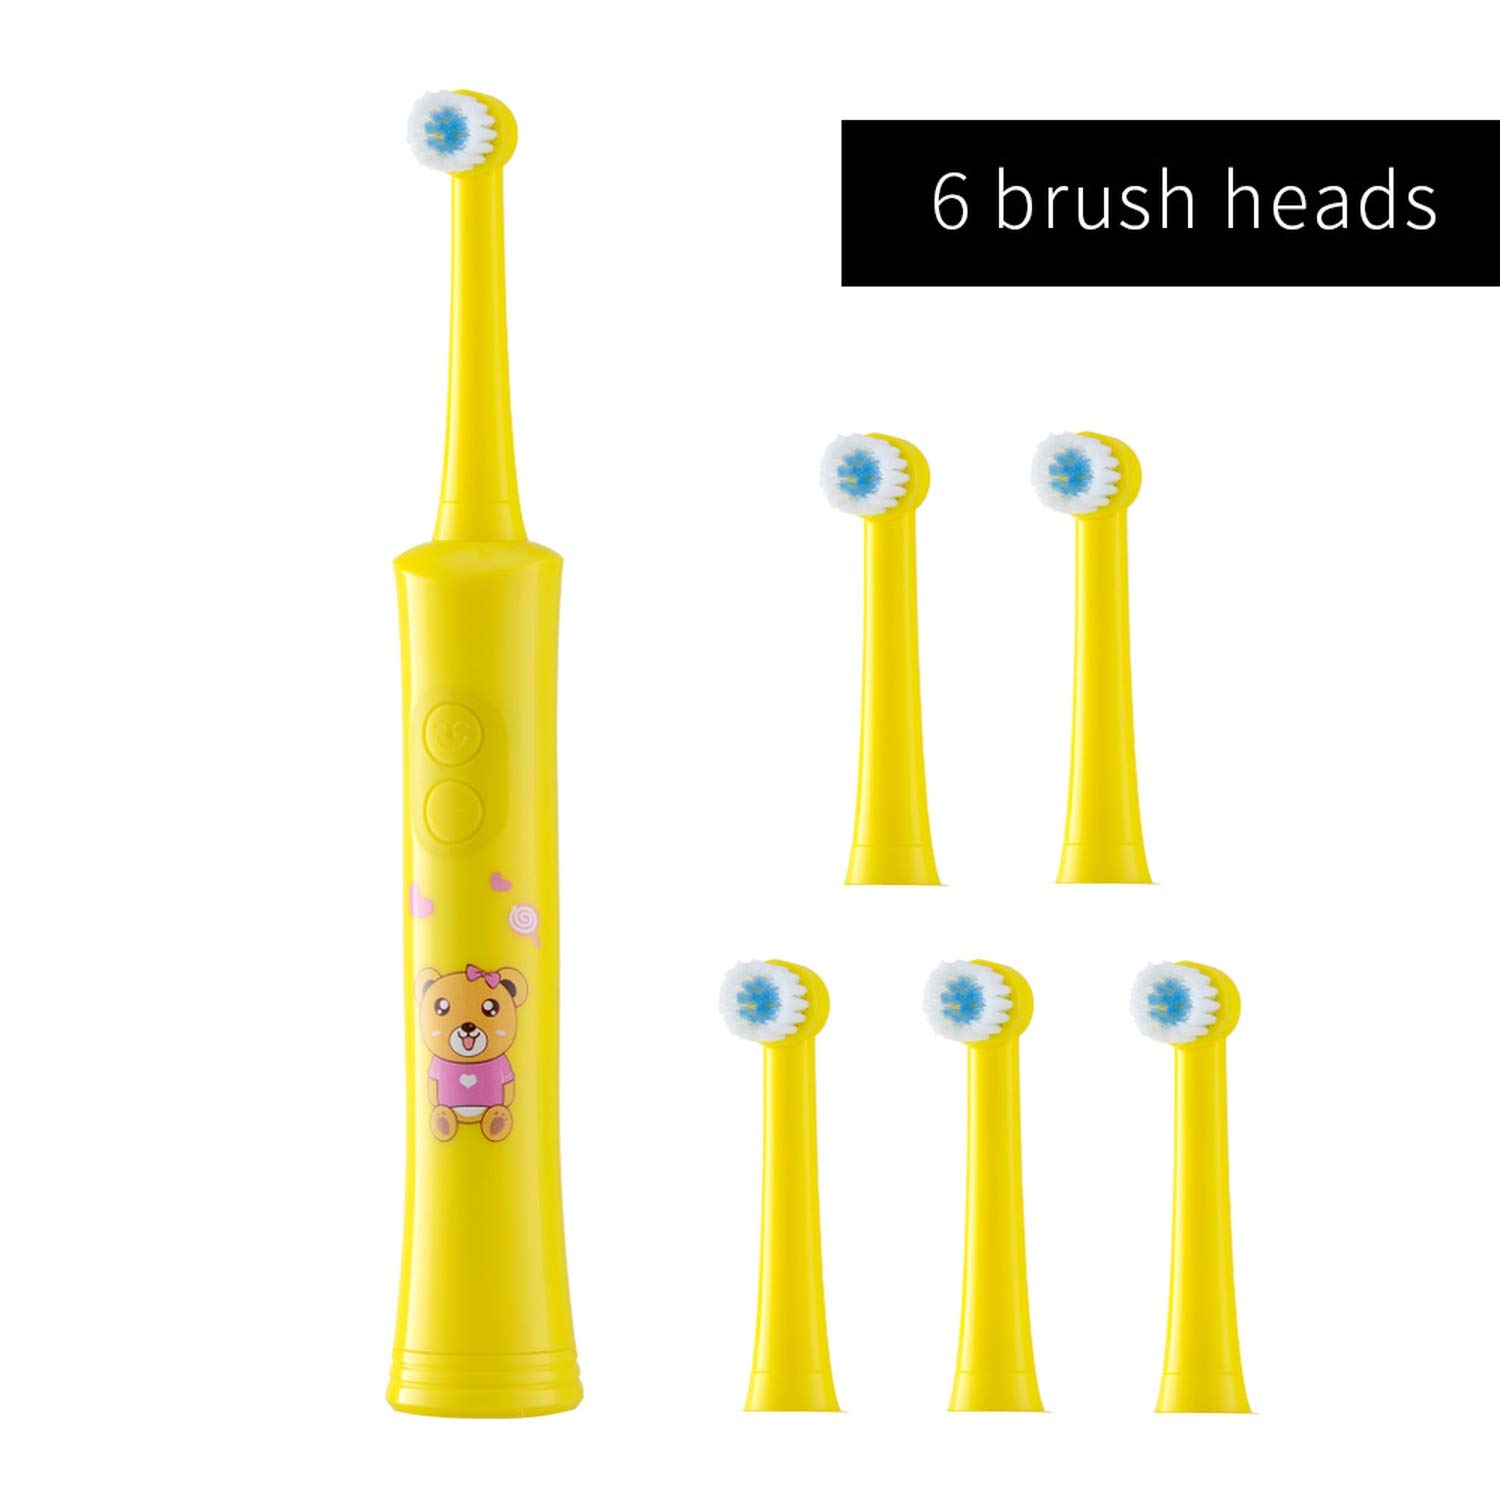 Amazon.com: Rotating Children Electric Toothbrush Tooth Brush Teeth Electric Toothbrush Rechargeable Hygiene Dental Care,R01 yellow: Beauty